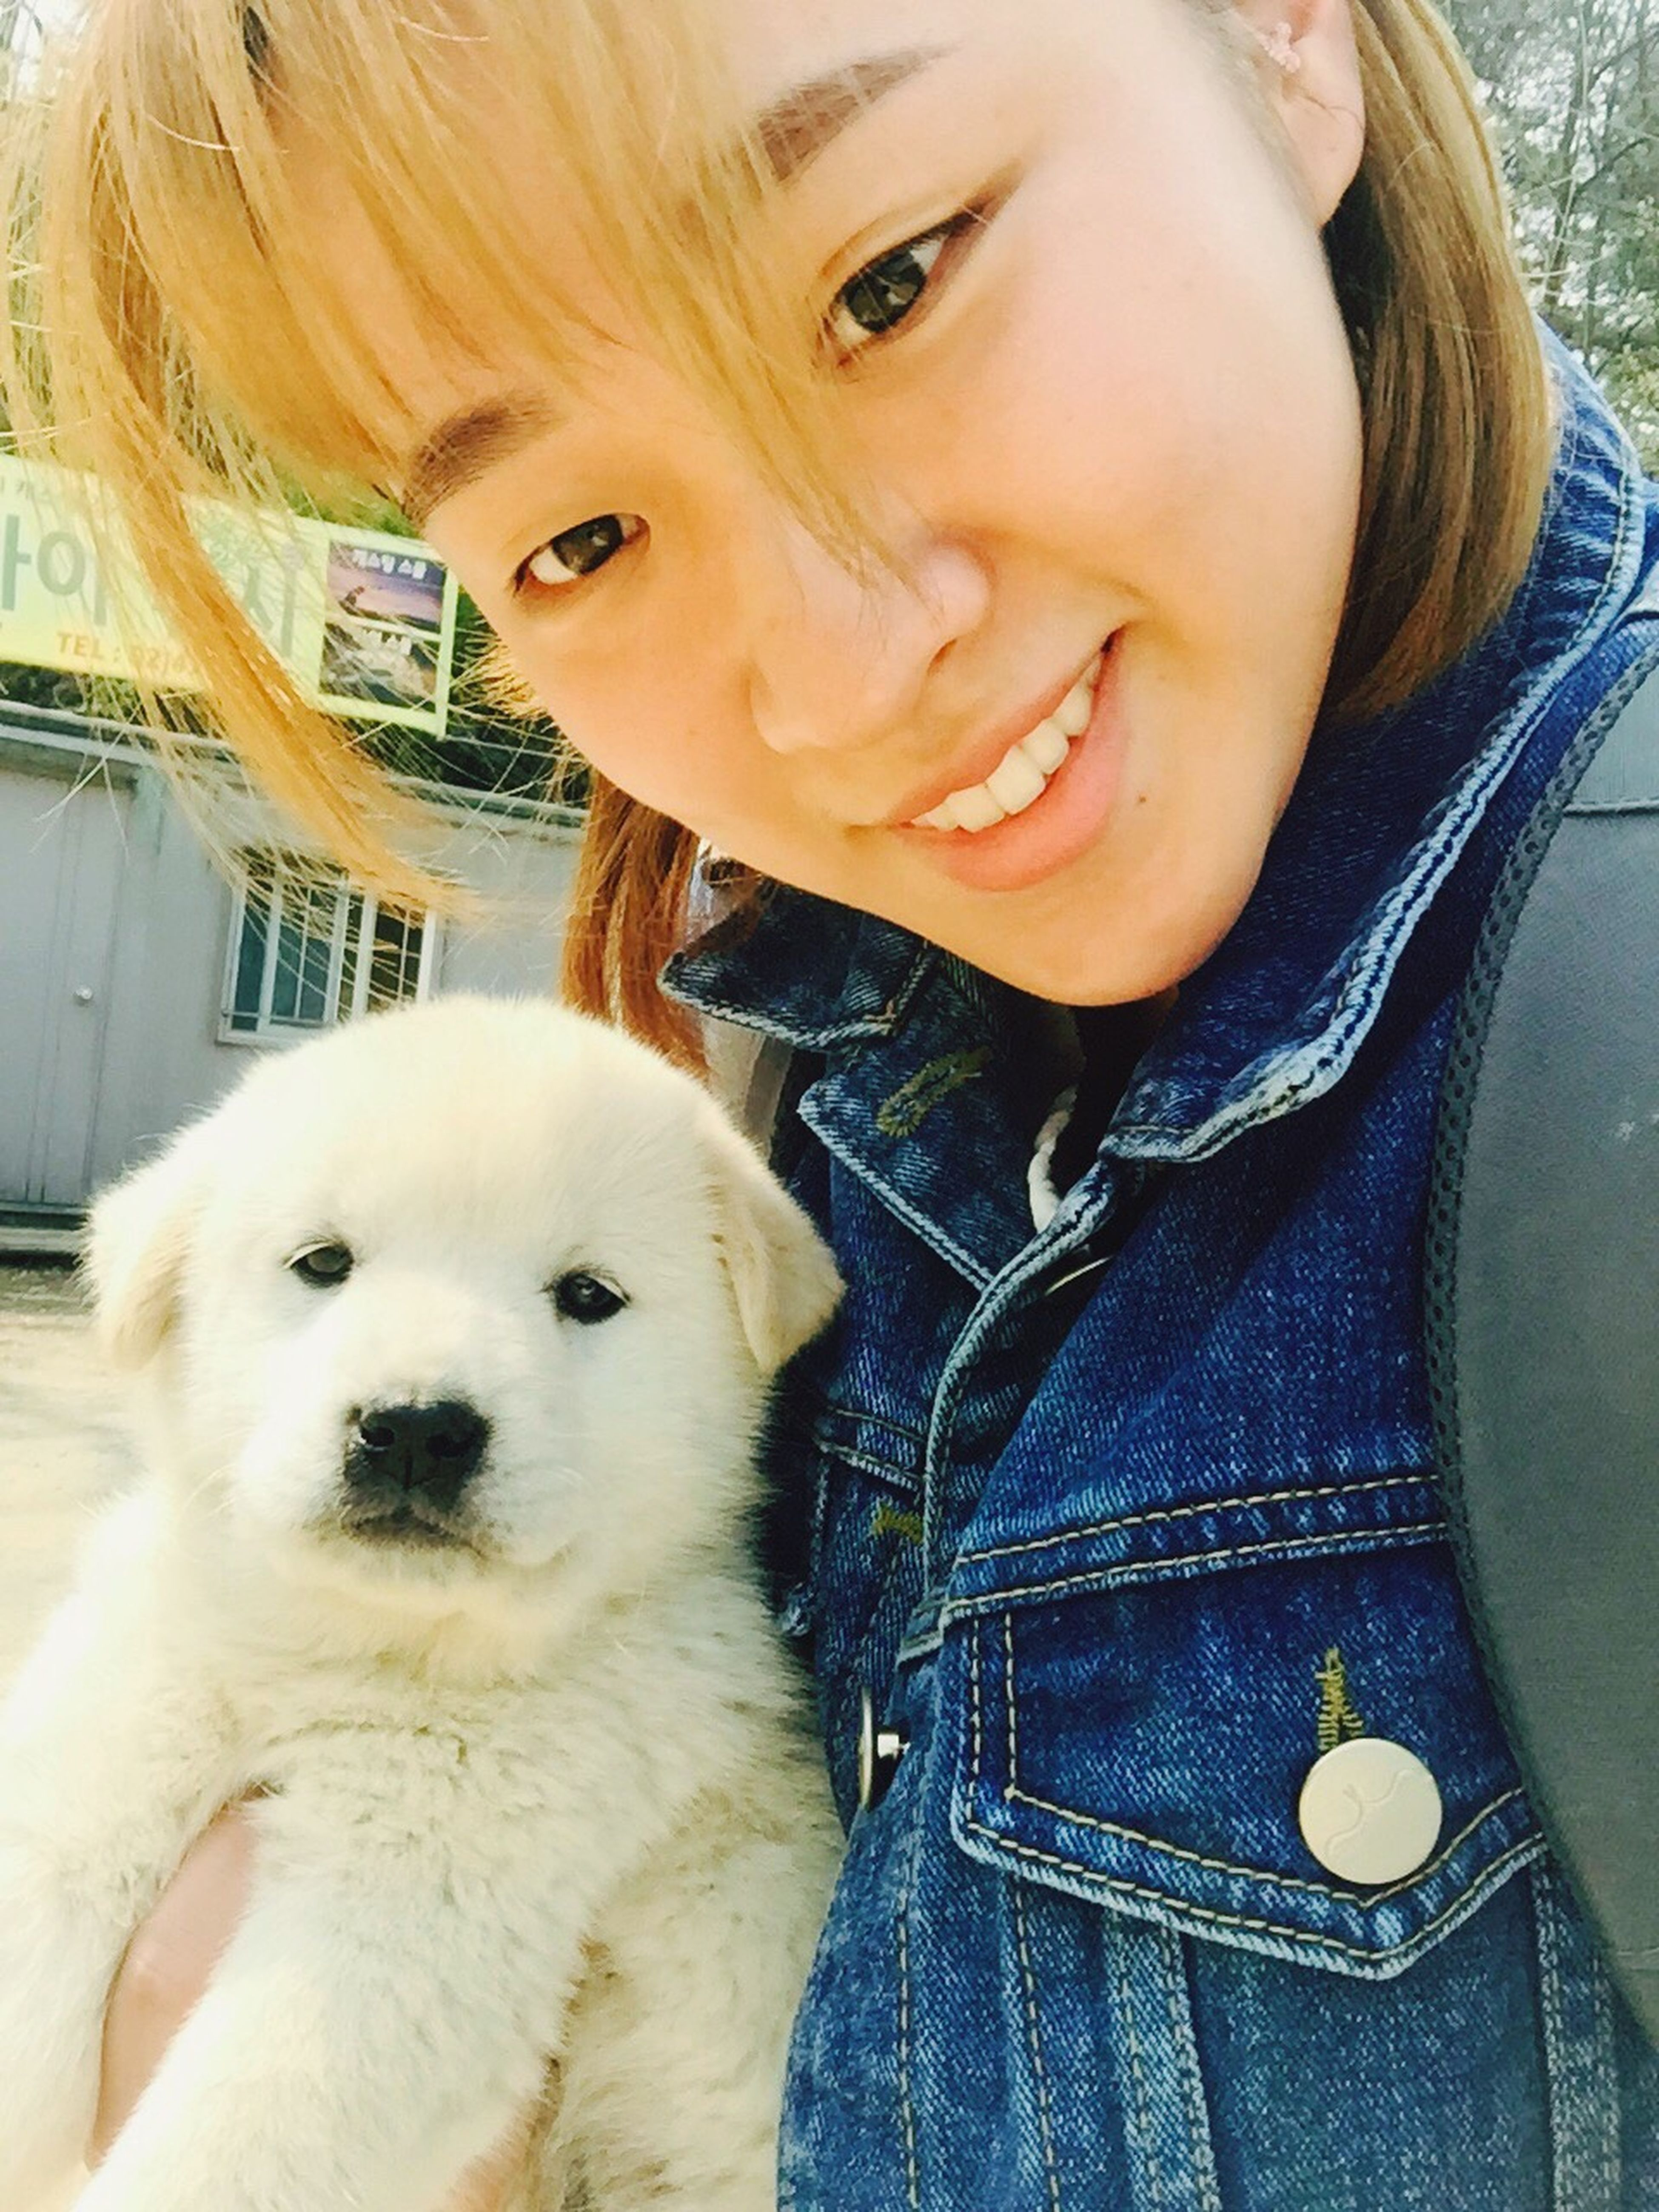 2015.04.22 Puppy❤ Doggy Cuty♡ Love You💋 Miss You Angel Picnic